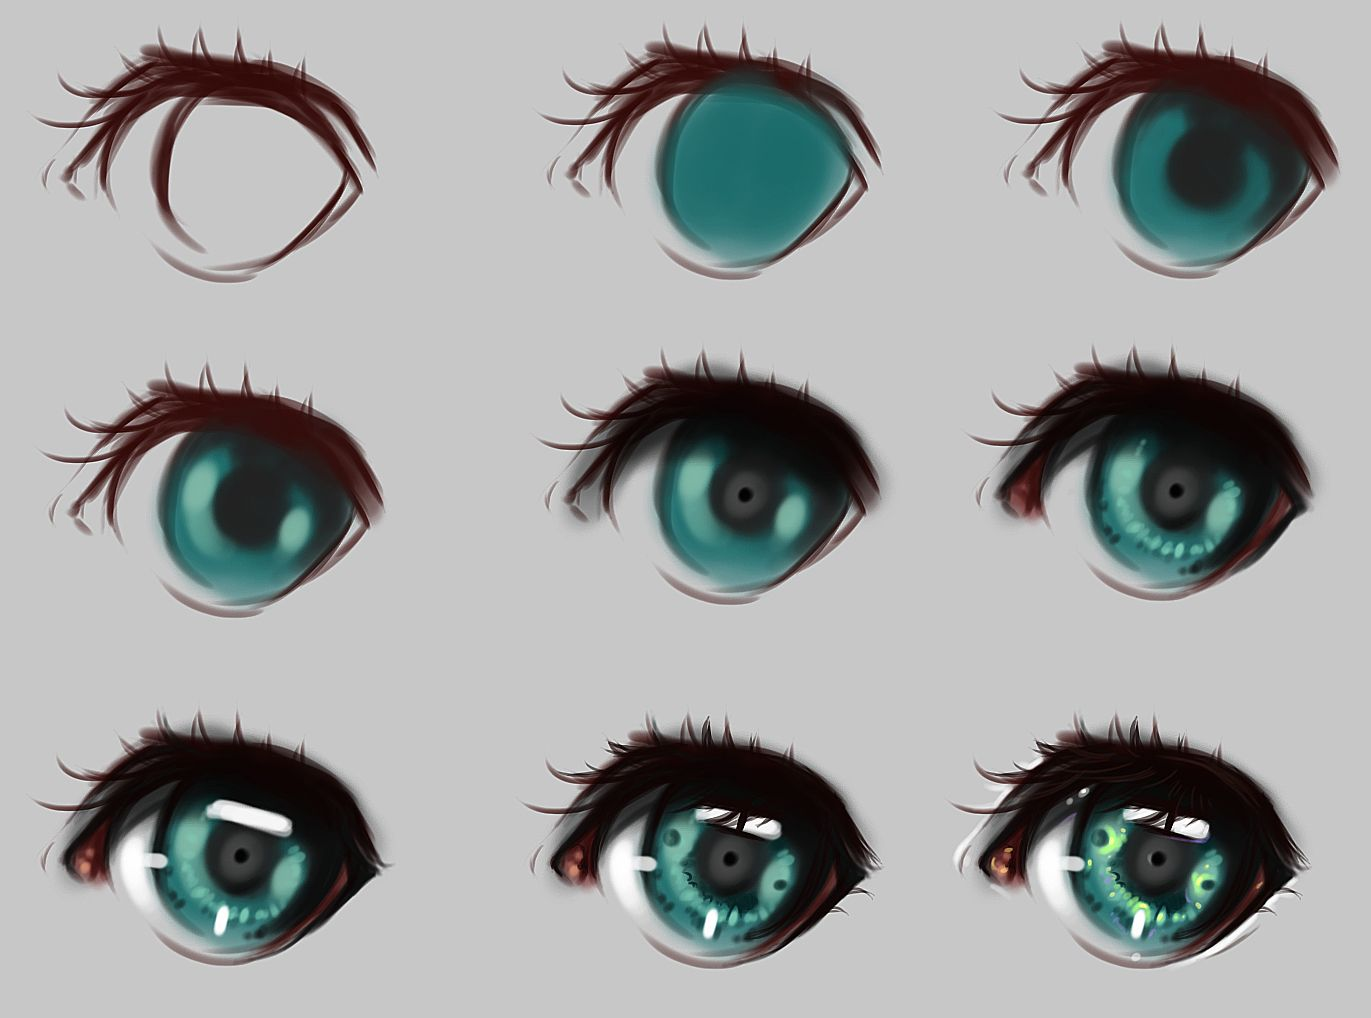 Eyes step by step by rykyiantart on deviantart digital eyes step by step by rykyiantart on deviantart ccuart Gallery